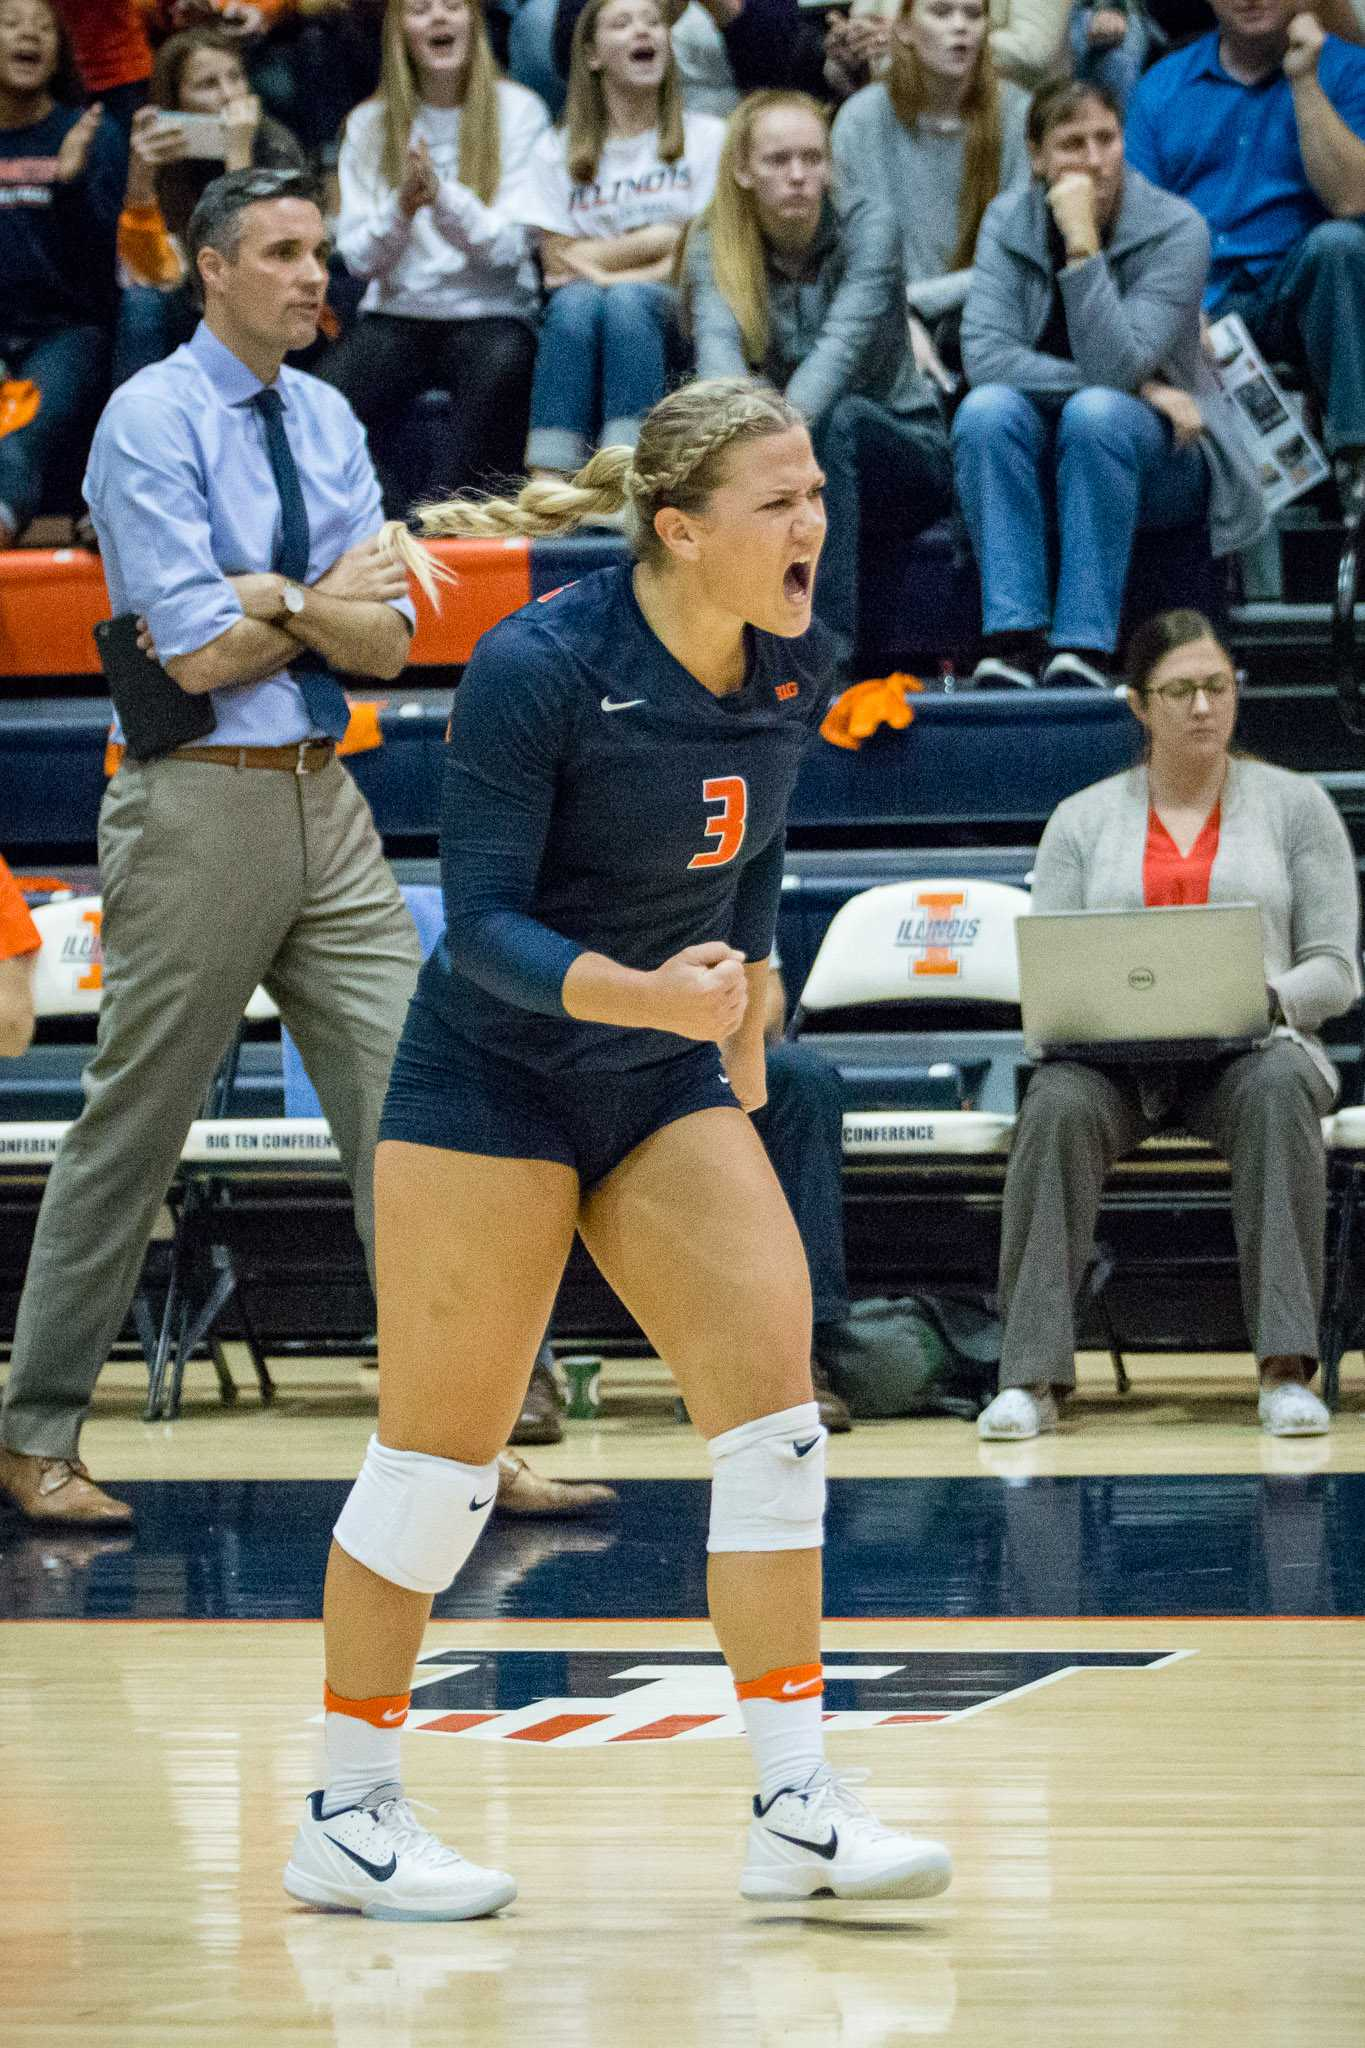 Illinois' Brandi Donnelly celebrates after a kill during the match against Northwestern at Huff Hall on Saturday, October 15. The Illini won 3-0.